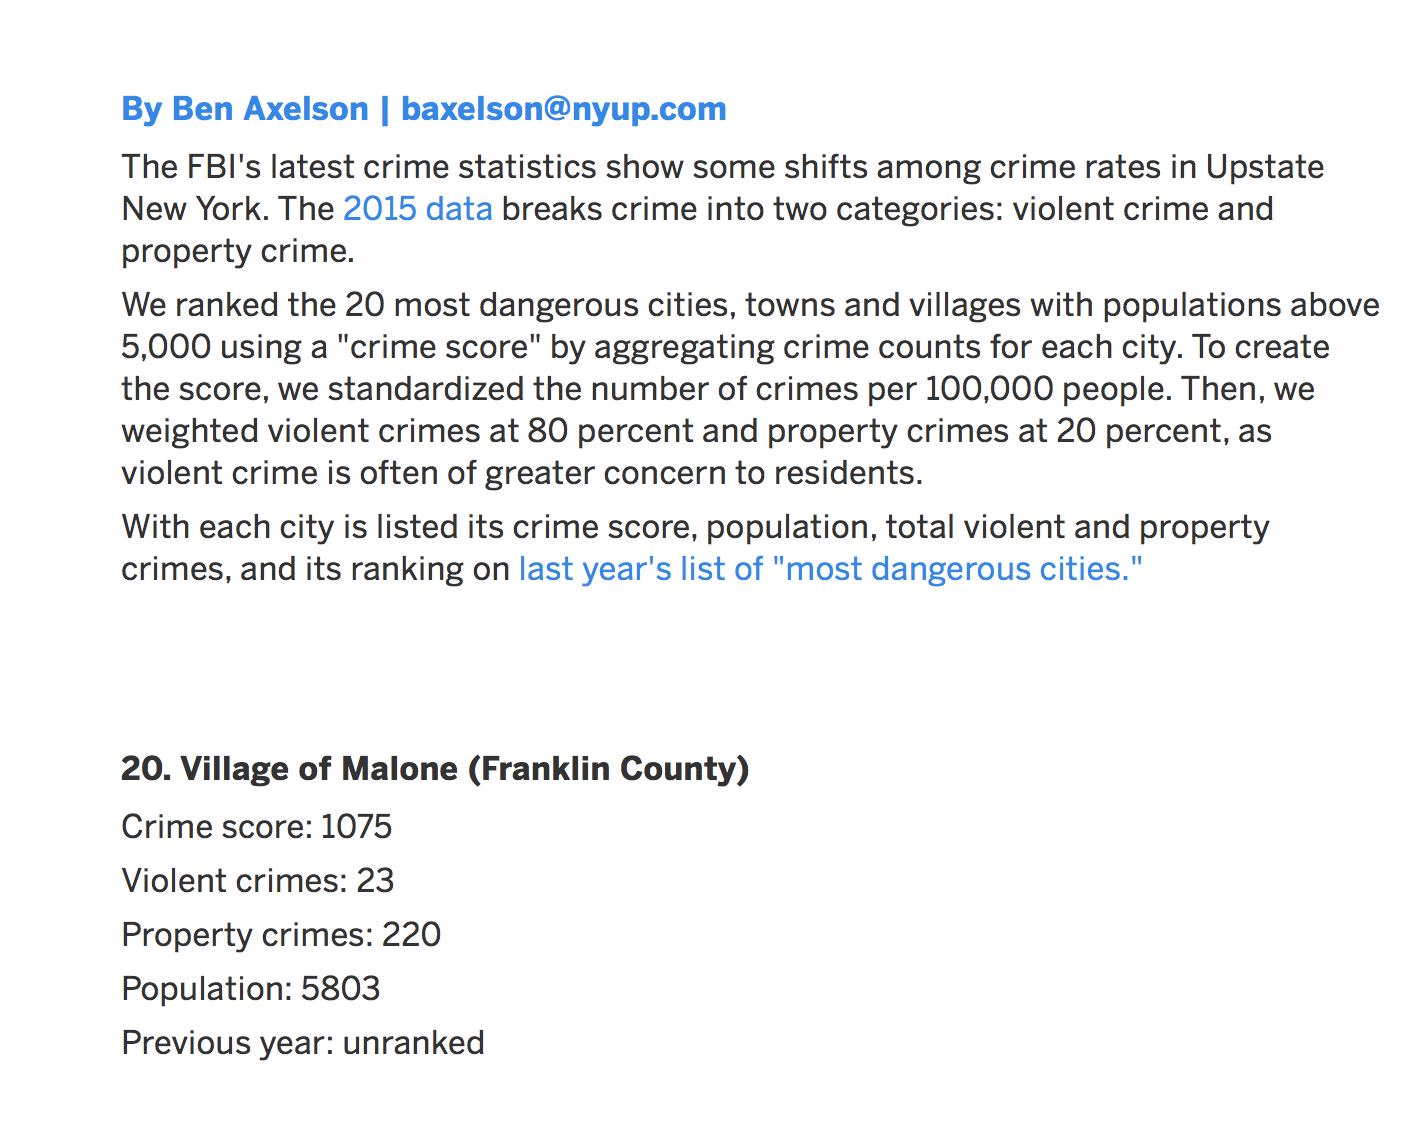 River city malone admin nyup gave the village of malone a so called crime score of 1075 to create the score says author ben axelson we standardized the number of crimes biocorpaavc Gallery